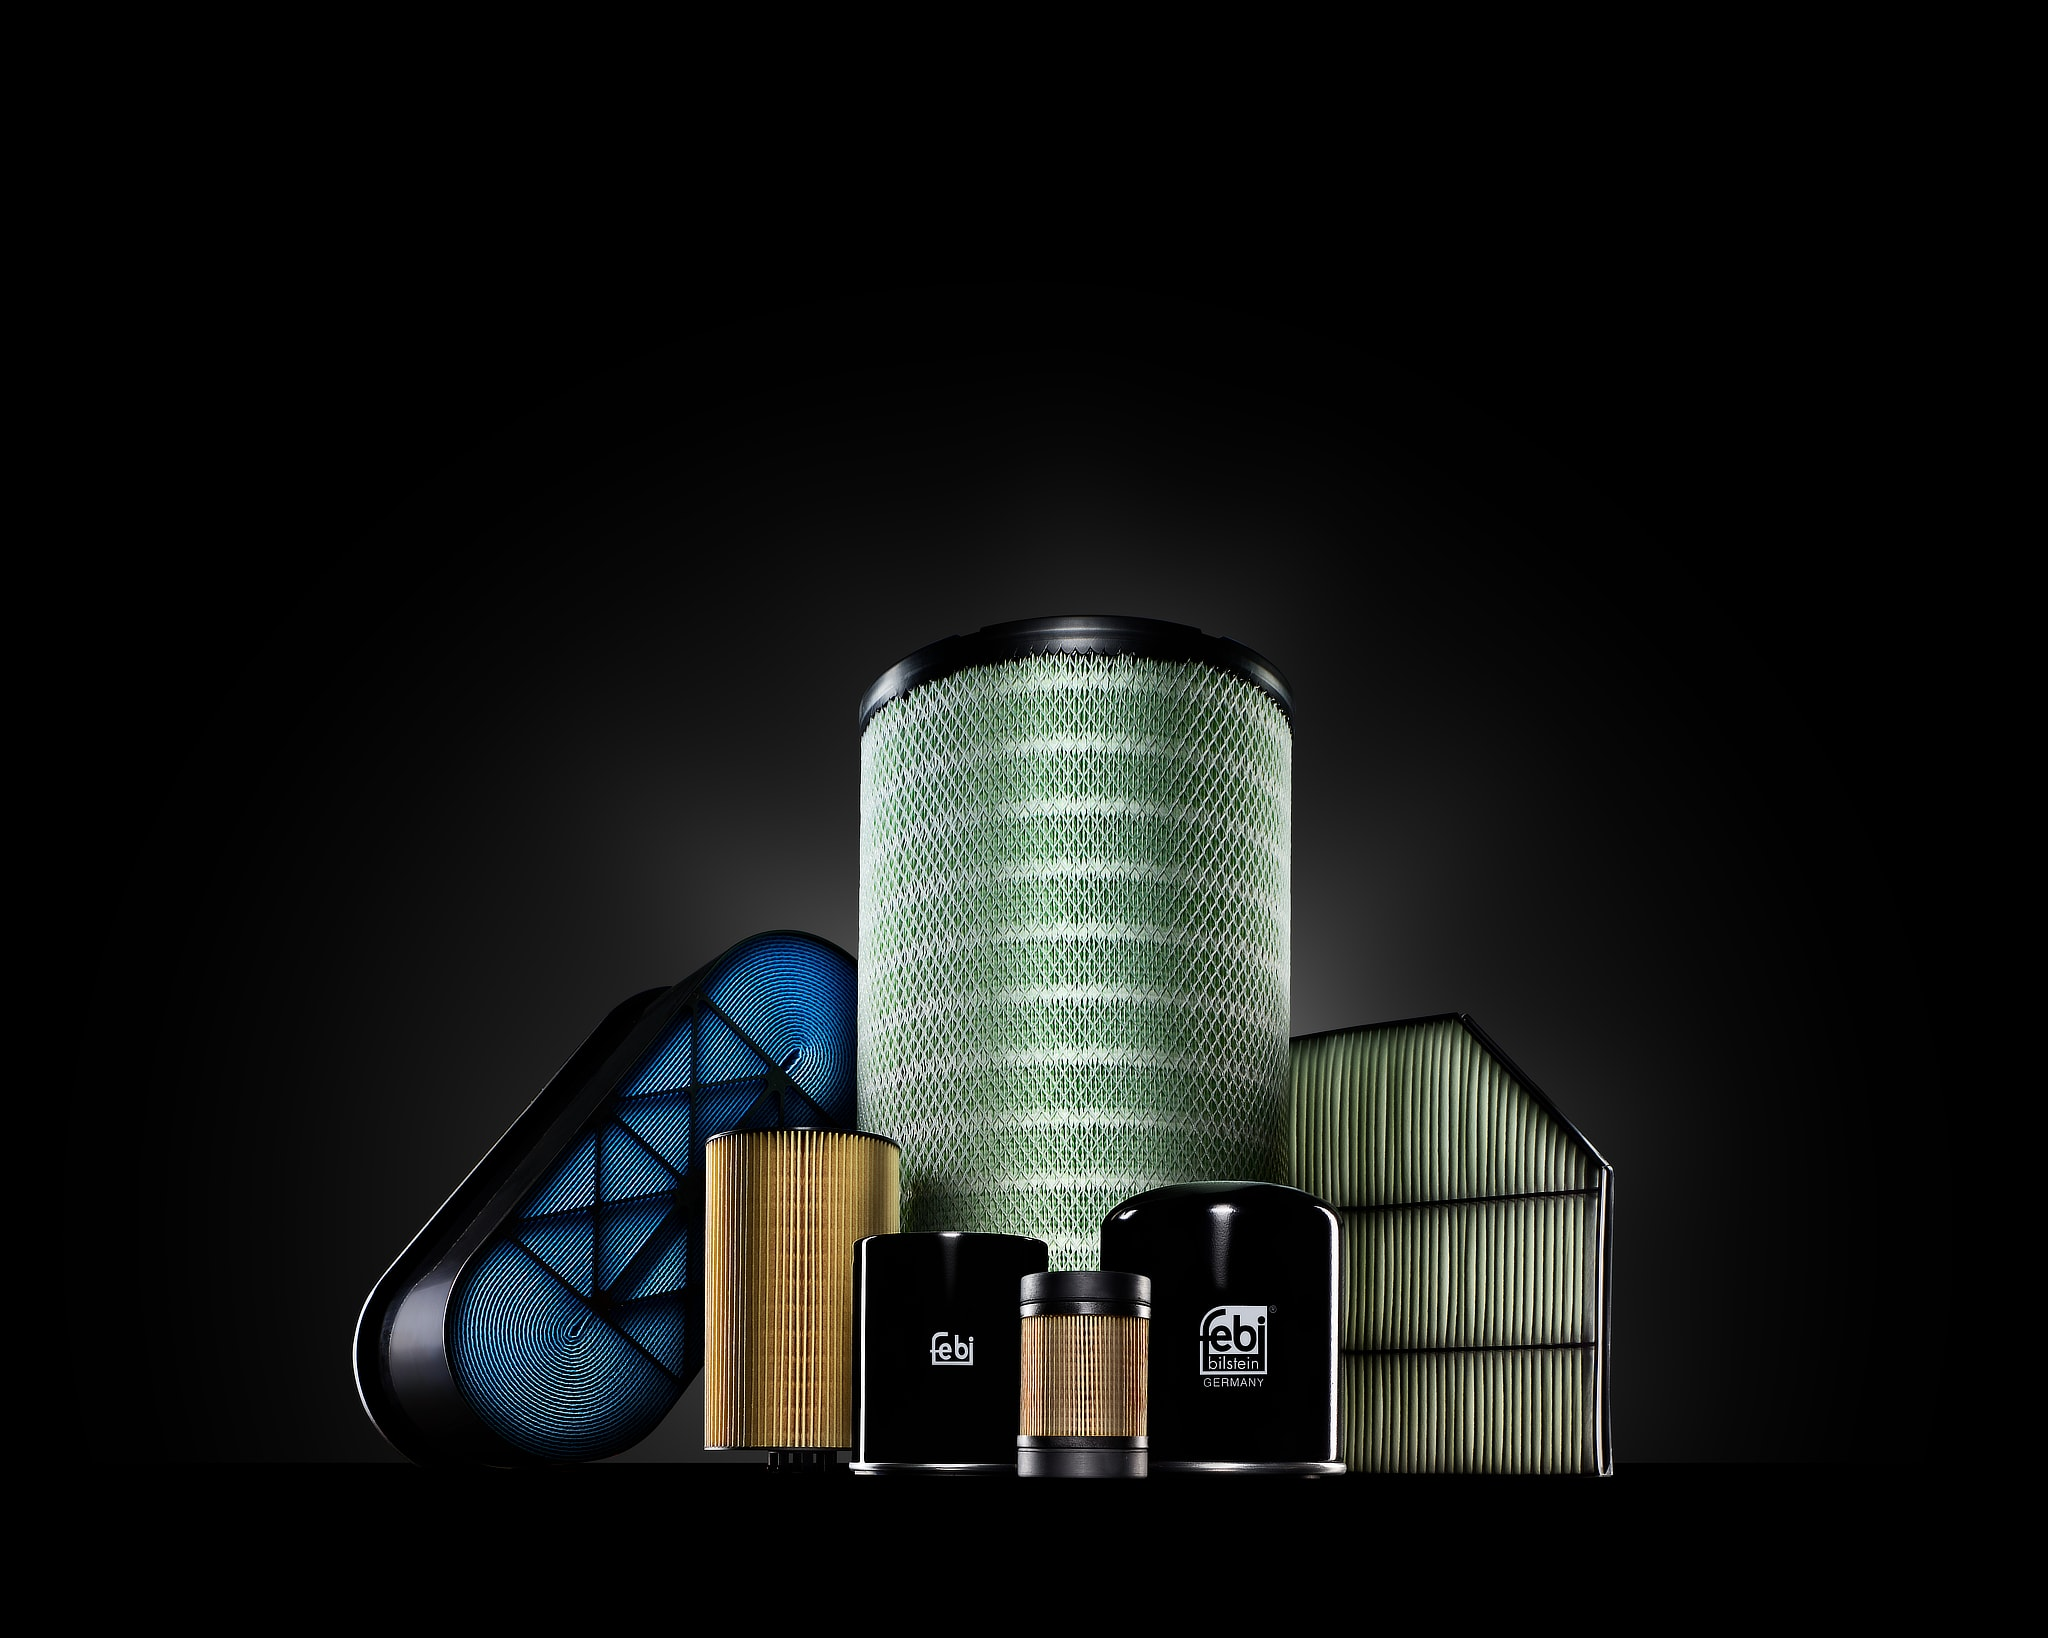 Advertising image of several air filters for trucks